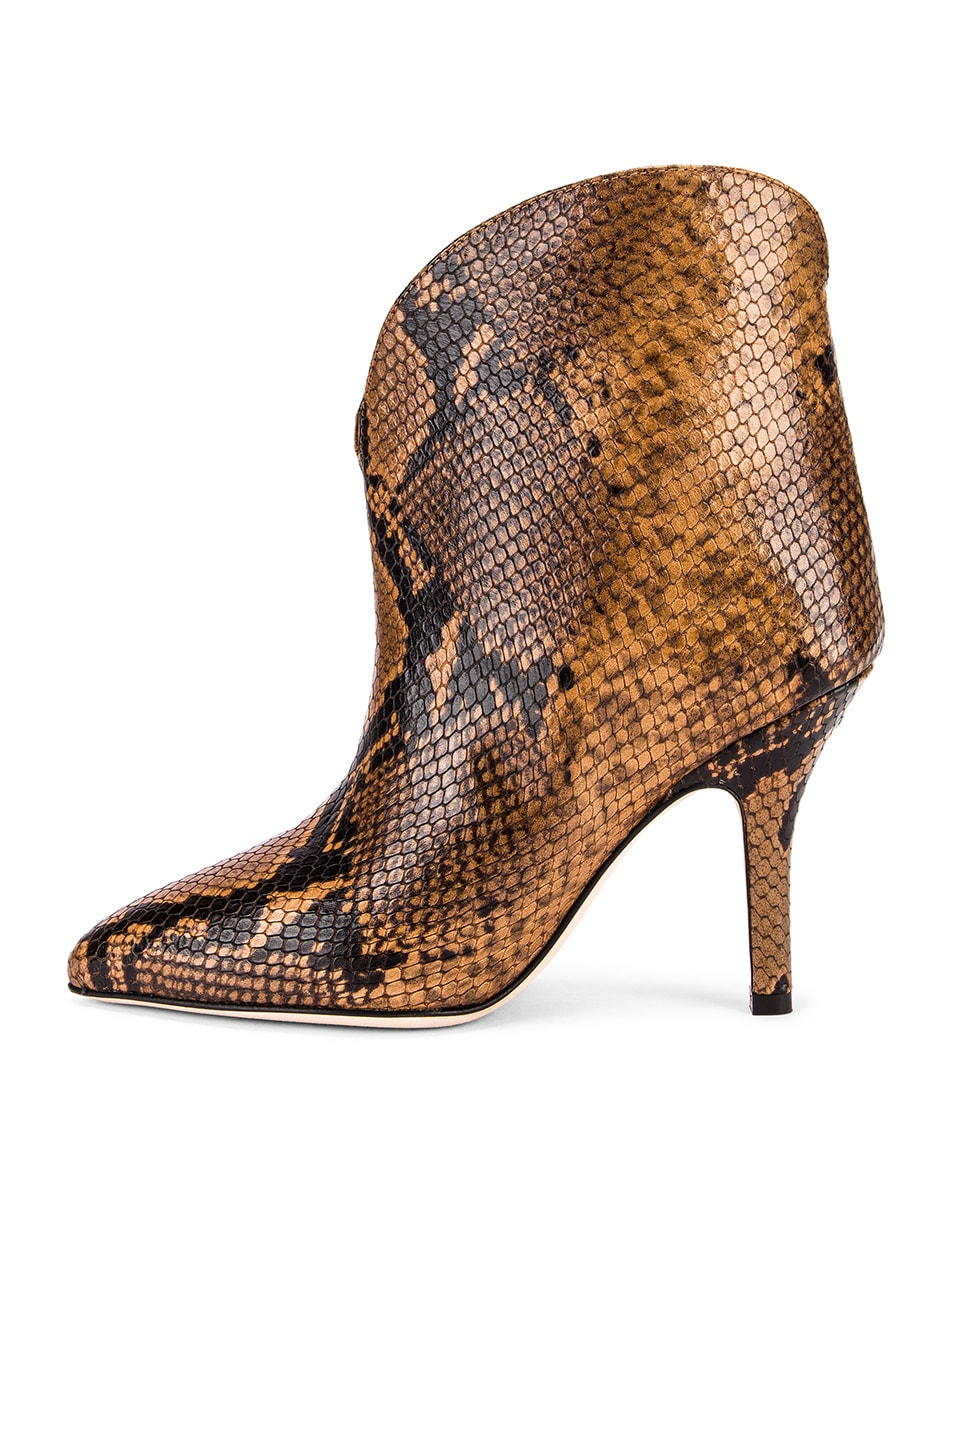 Image 5 of Paris Texas Python Print Ankle Boot in Camel